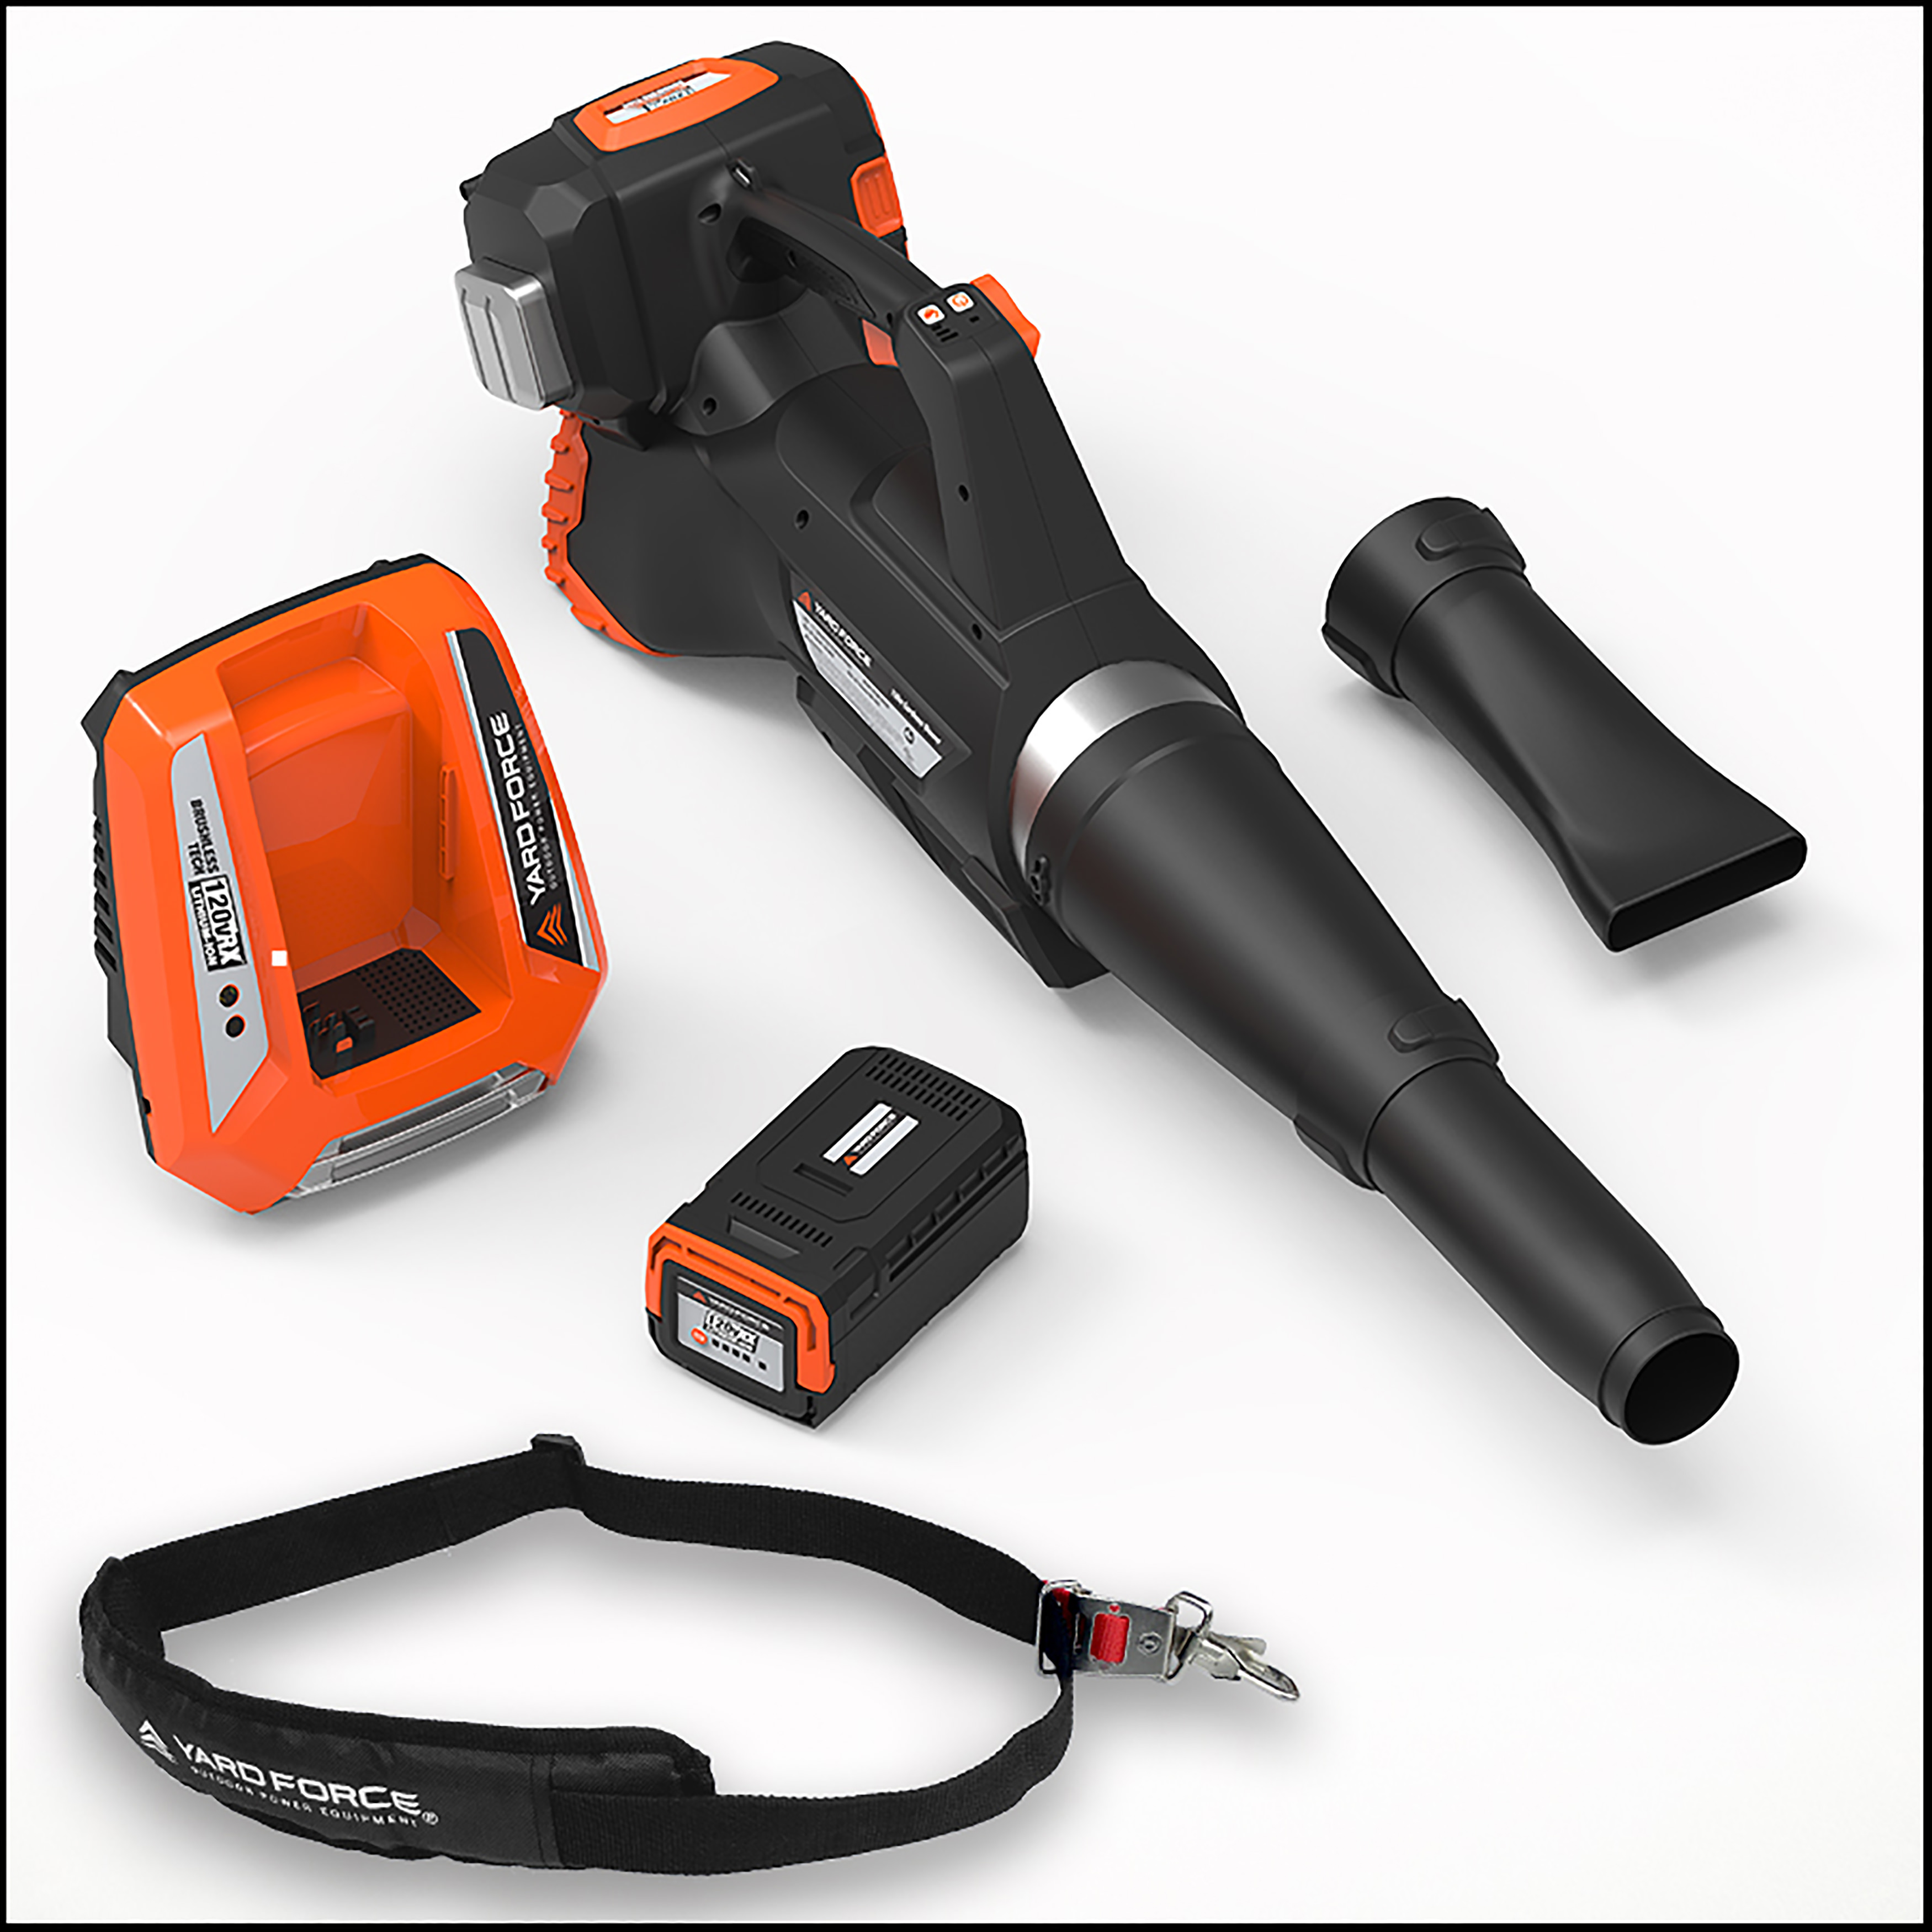 Yard Force 120vRX Lithium-Ion Blower with Push-Button Speed Control - COMPLETE Kit